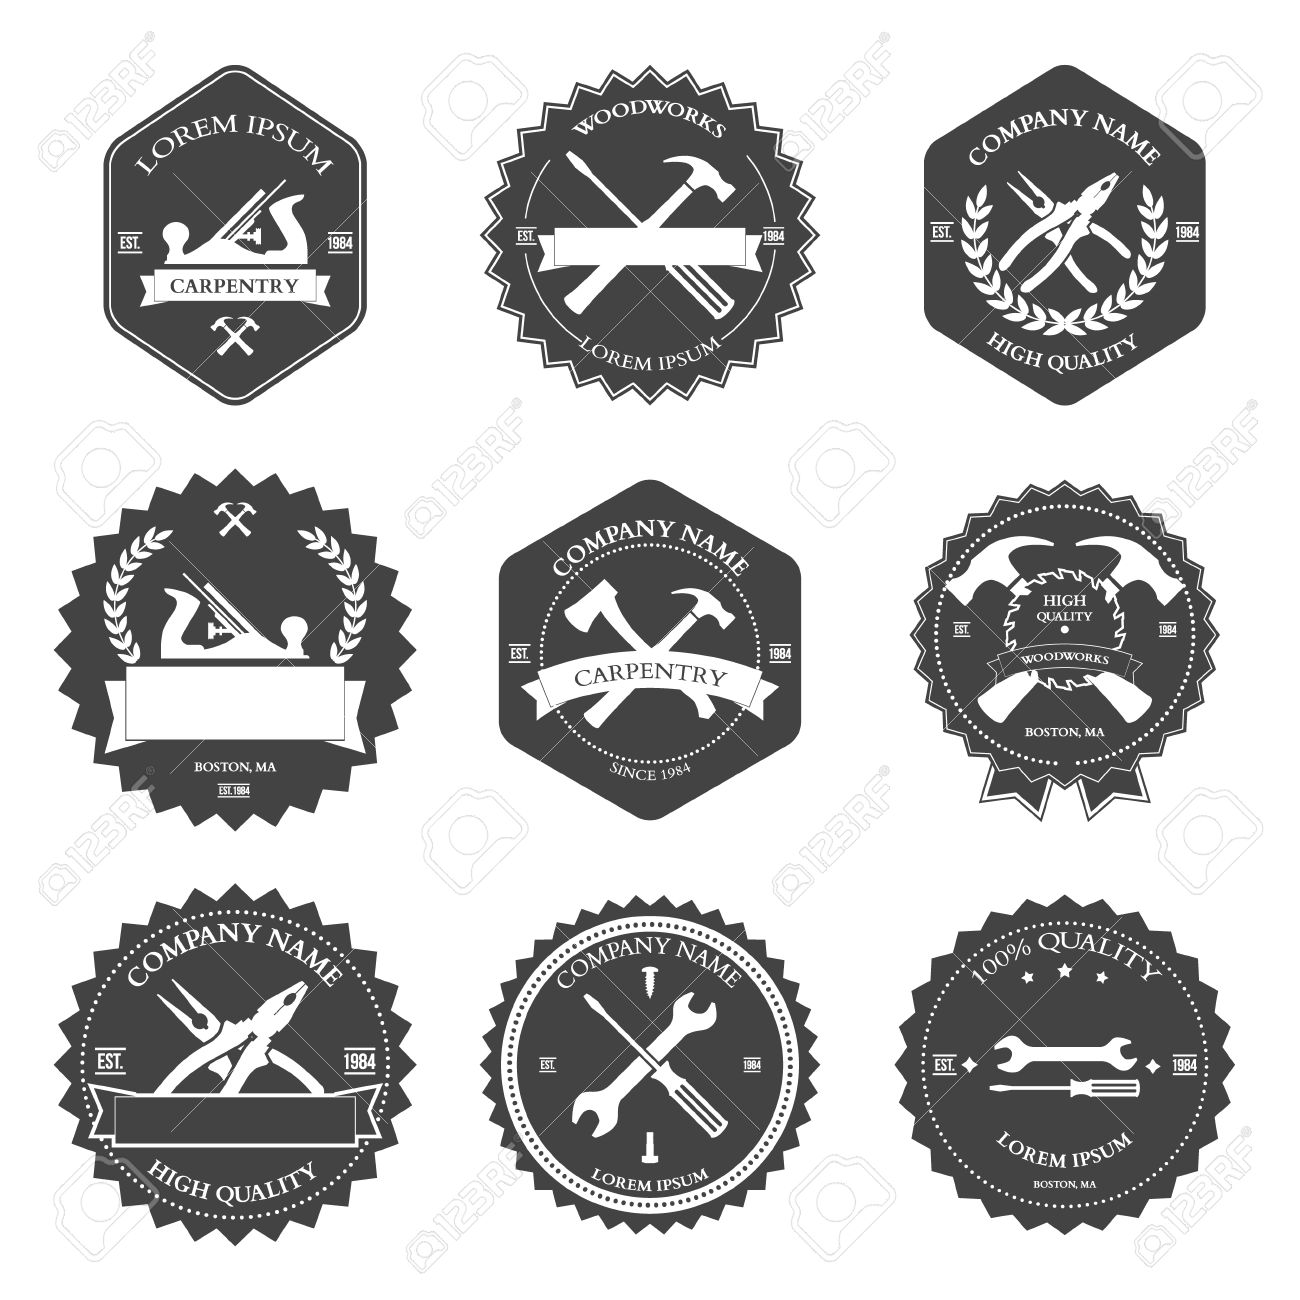 Carpenter Vector At Getdrawings Com Free For Personal Use